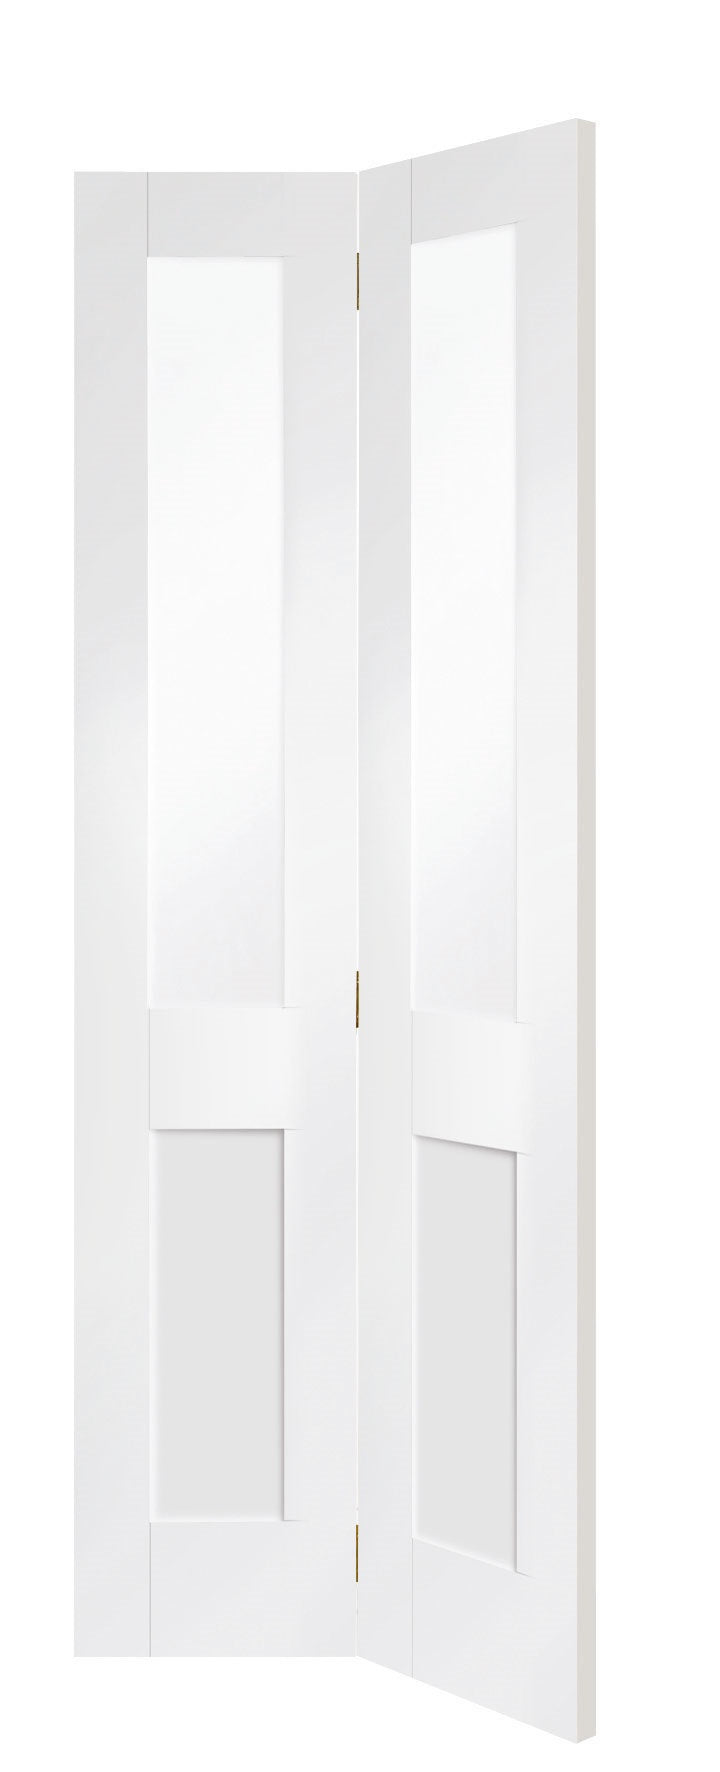 Marston Frosted Glass room divider, 5 Leaf White Prefinished